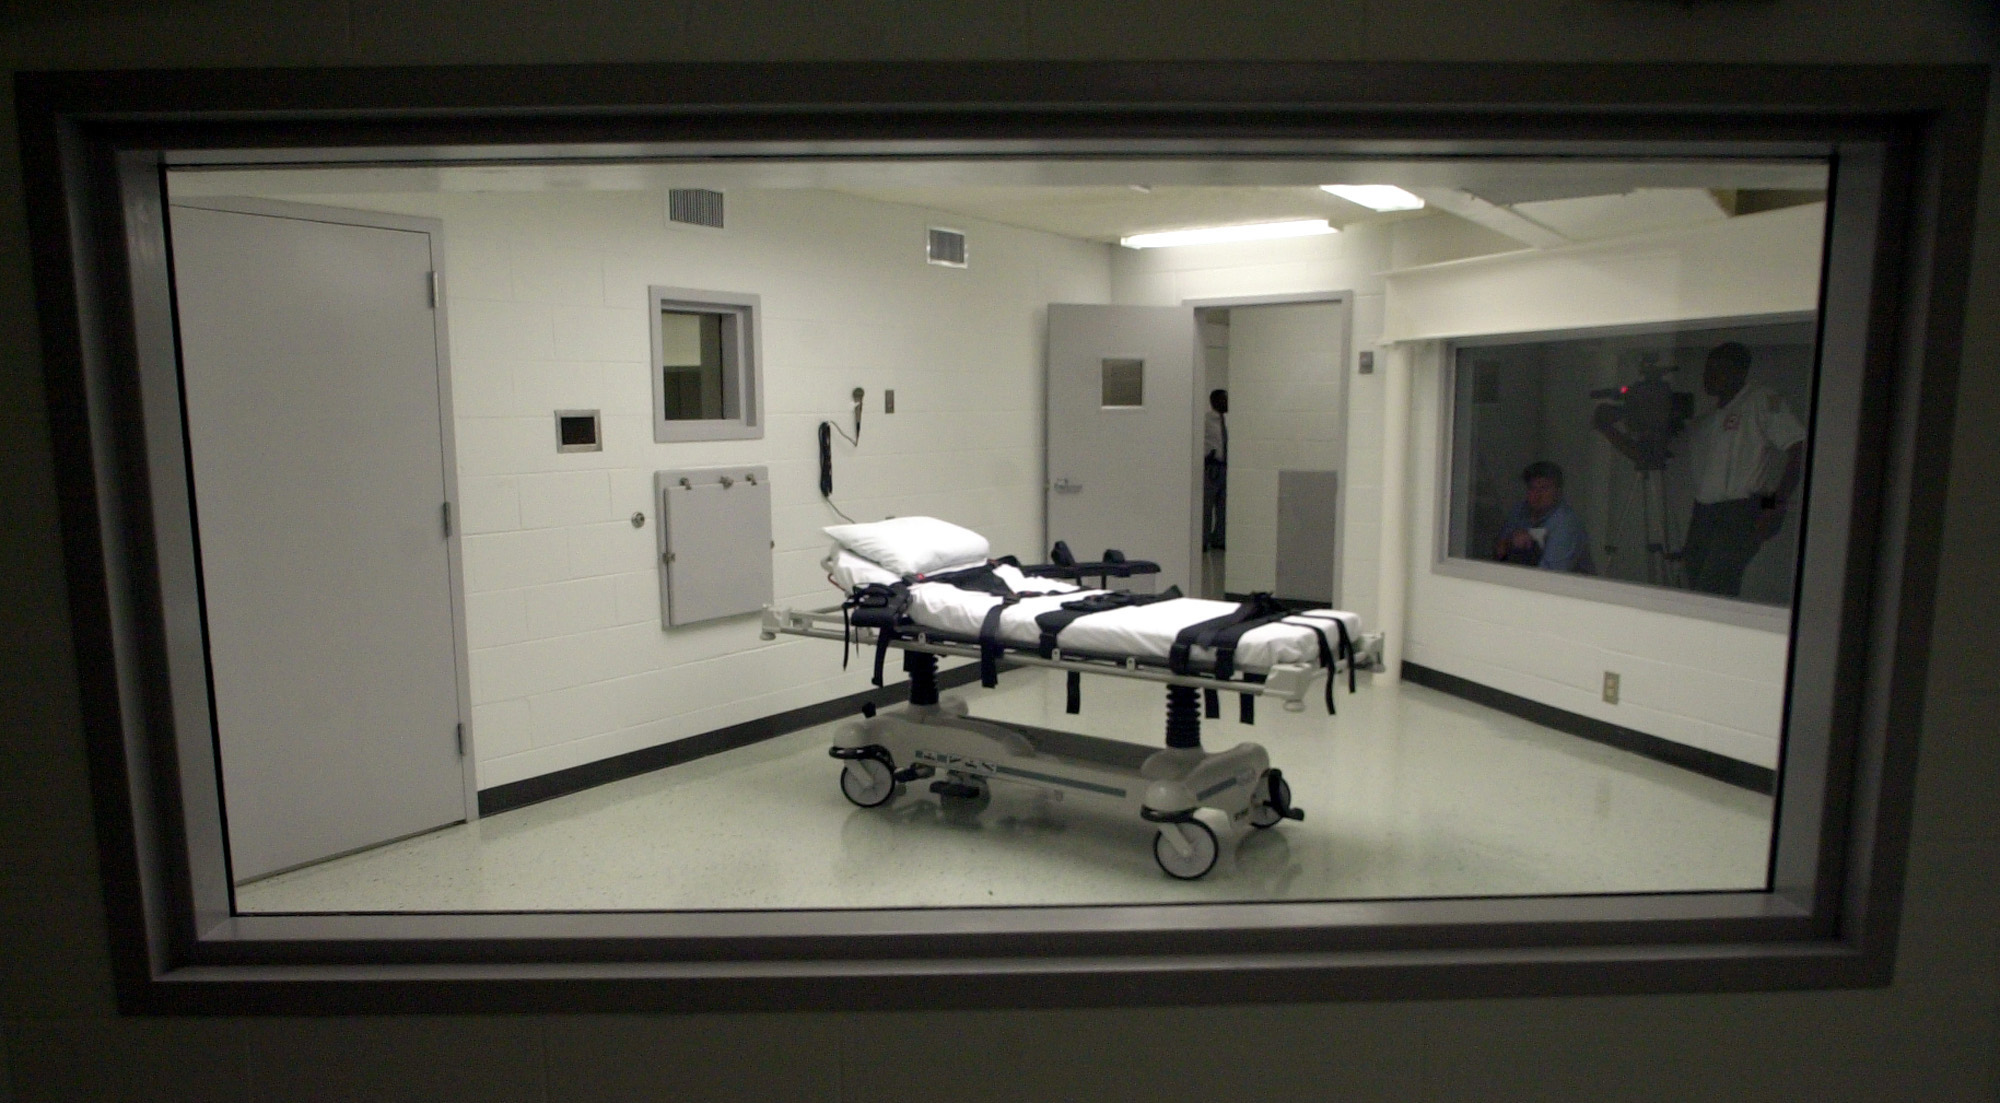 Alabama's lethal injection chamber at Holman Correctional Facility in Atmore, Ala.